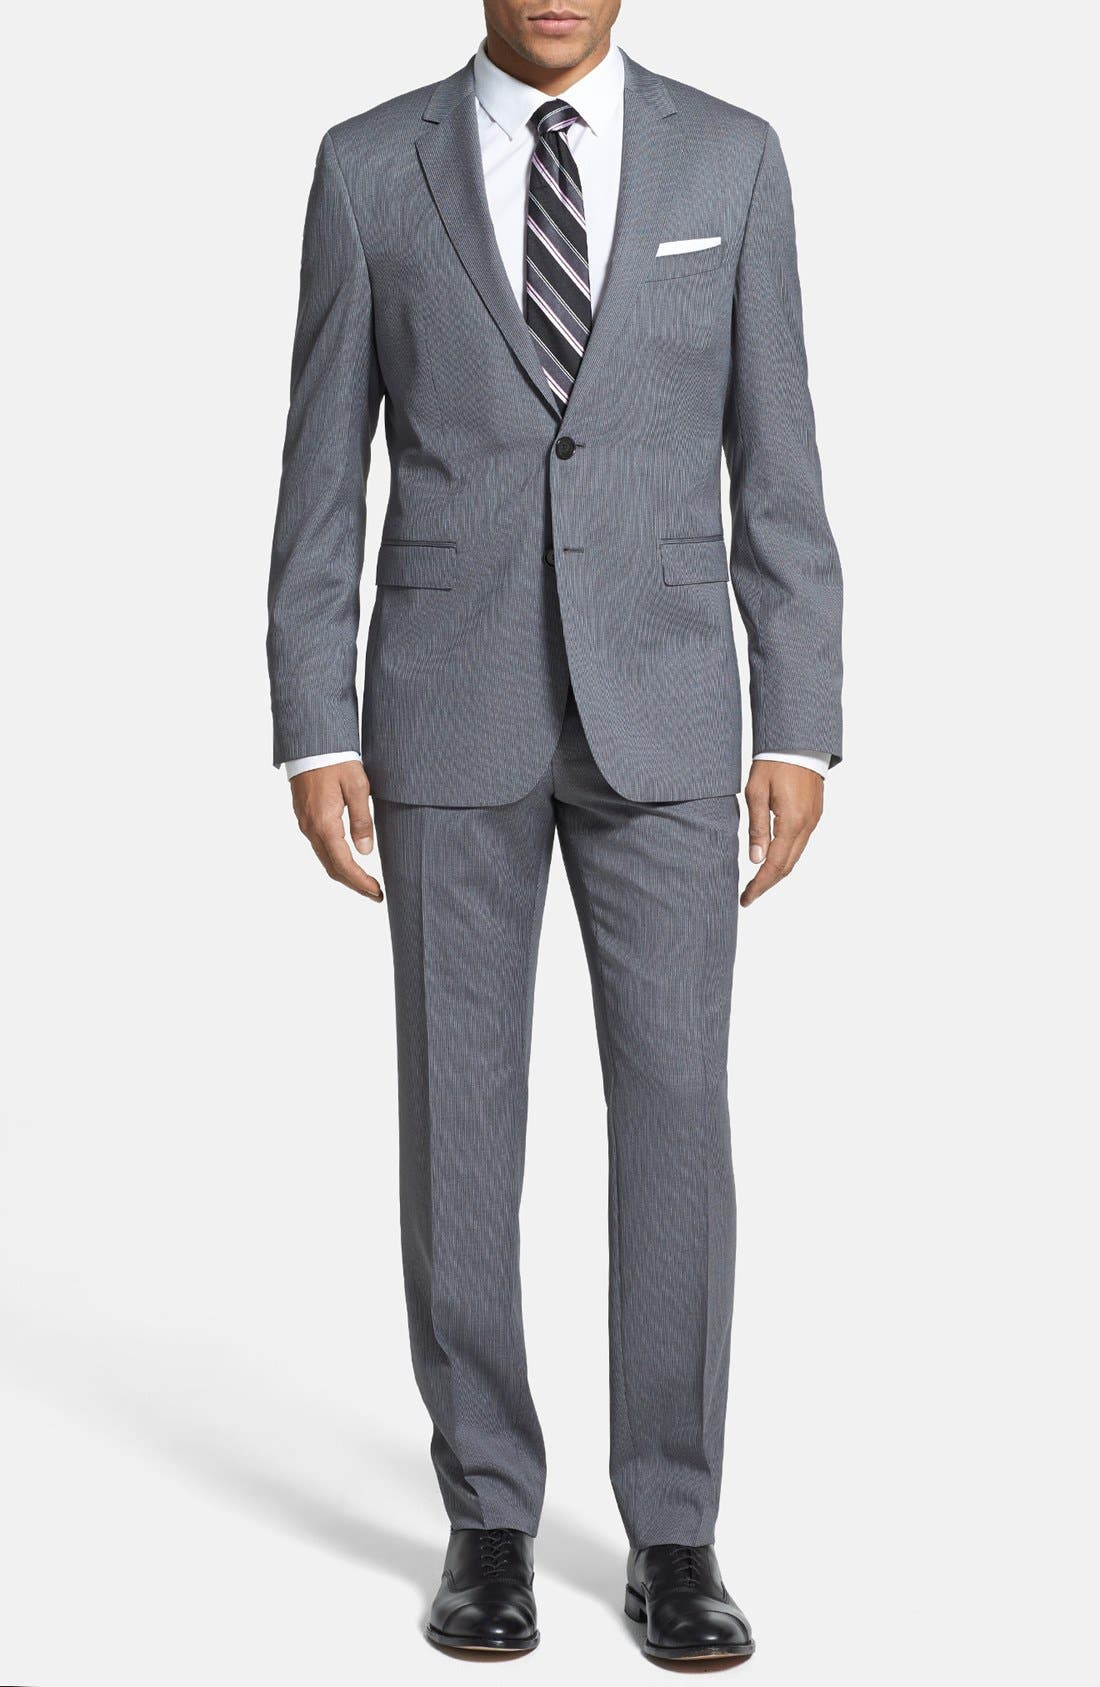 ZZDNUHUGO BOSS,                             BOSS HUGO BOSS 'Ryan/Win' Extra Trim Fit Stripe Suit,                             Main thumbnail 1, color,                             030